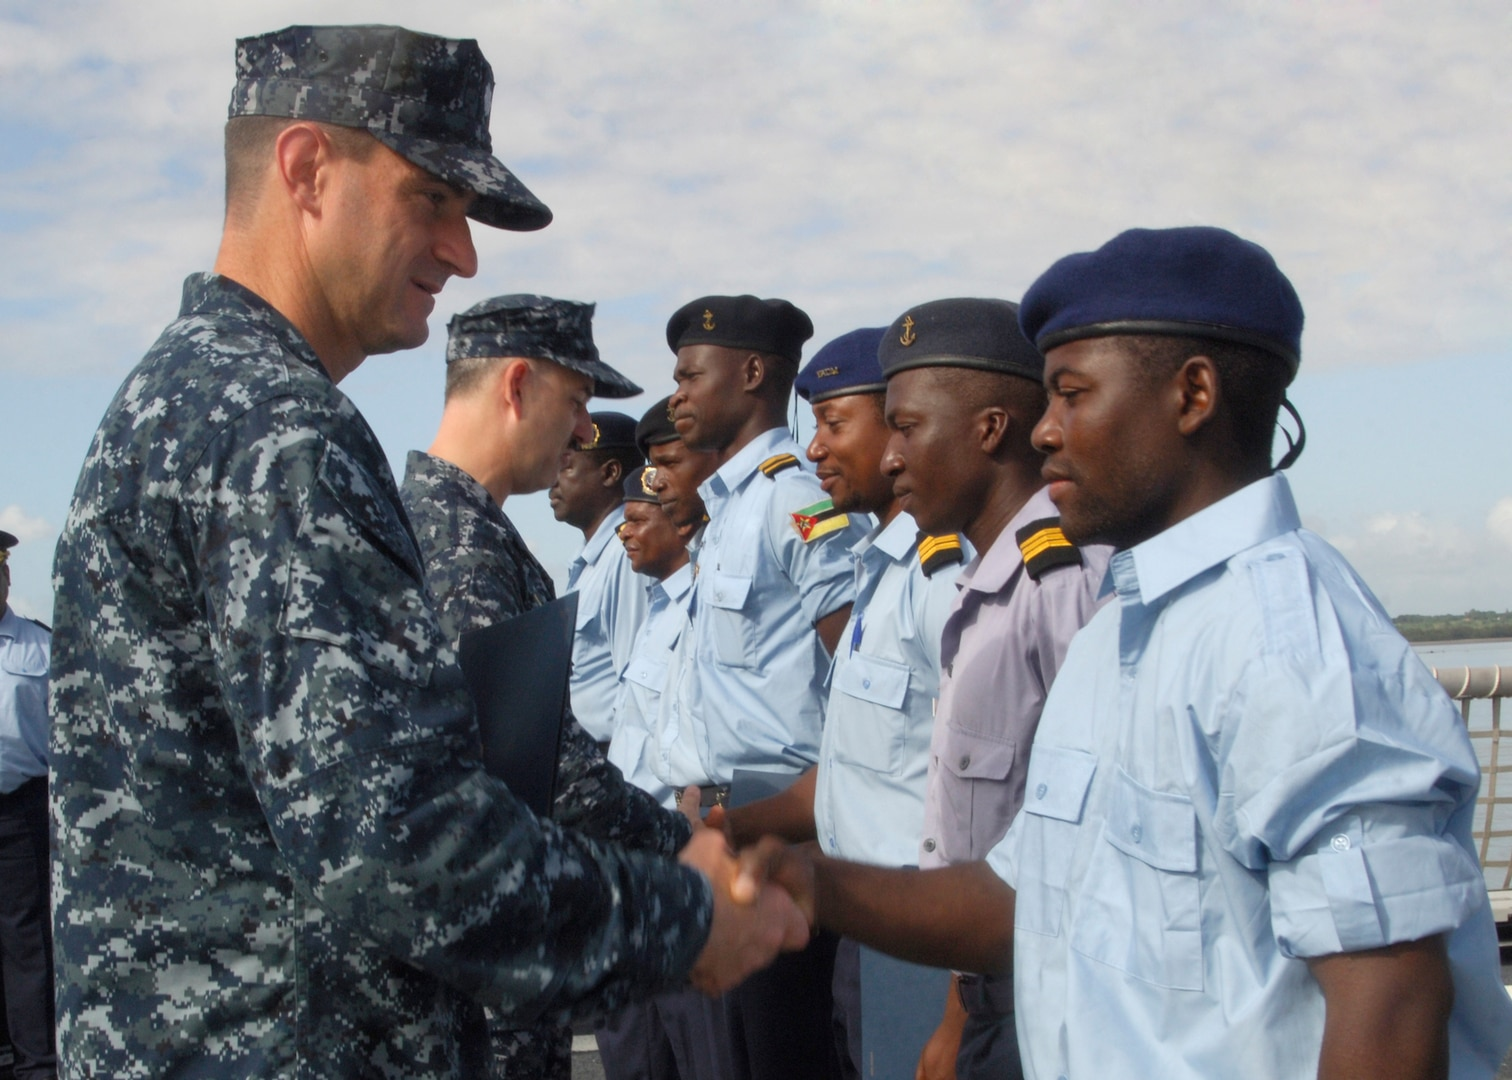 MAPUTO, Mozambique (Feb. 10, 2010)